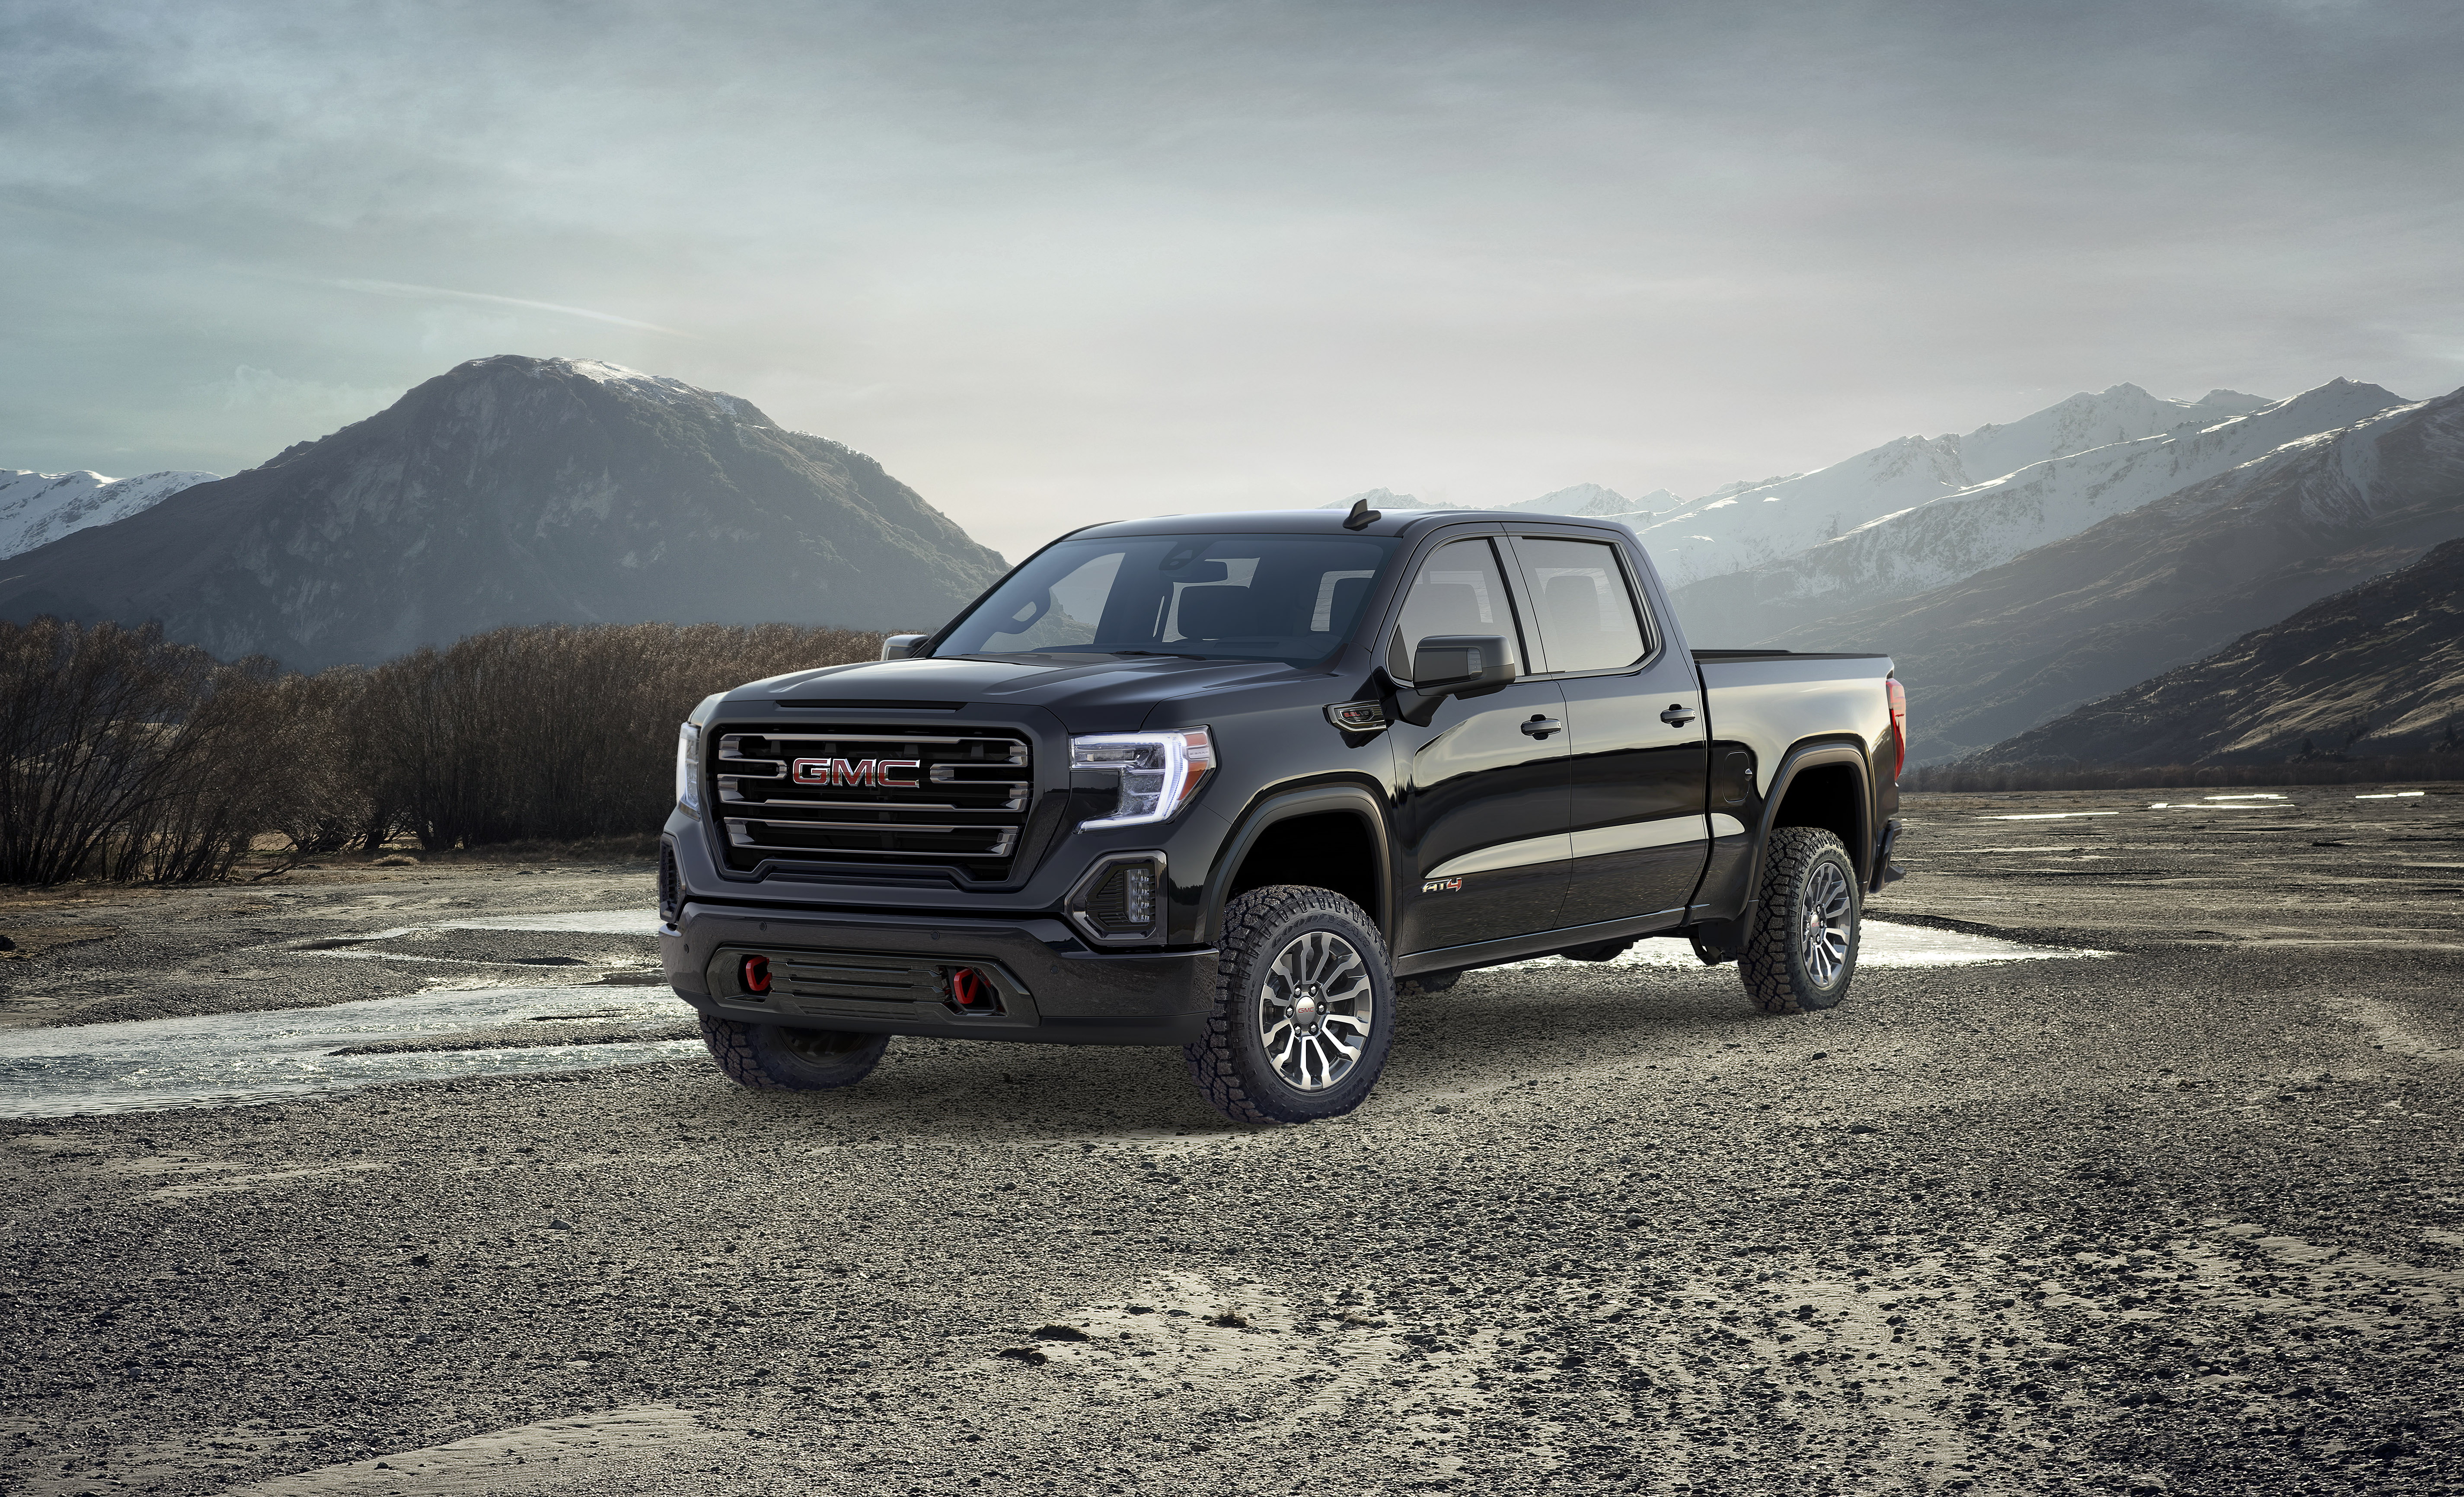 b825ed9066f Refinement Ventures Off-Road with All-New Sierra AT4